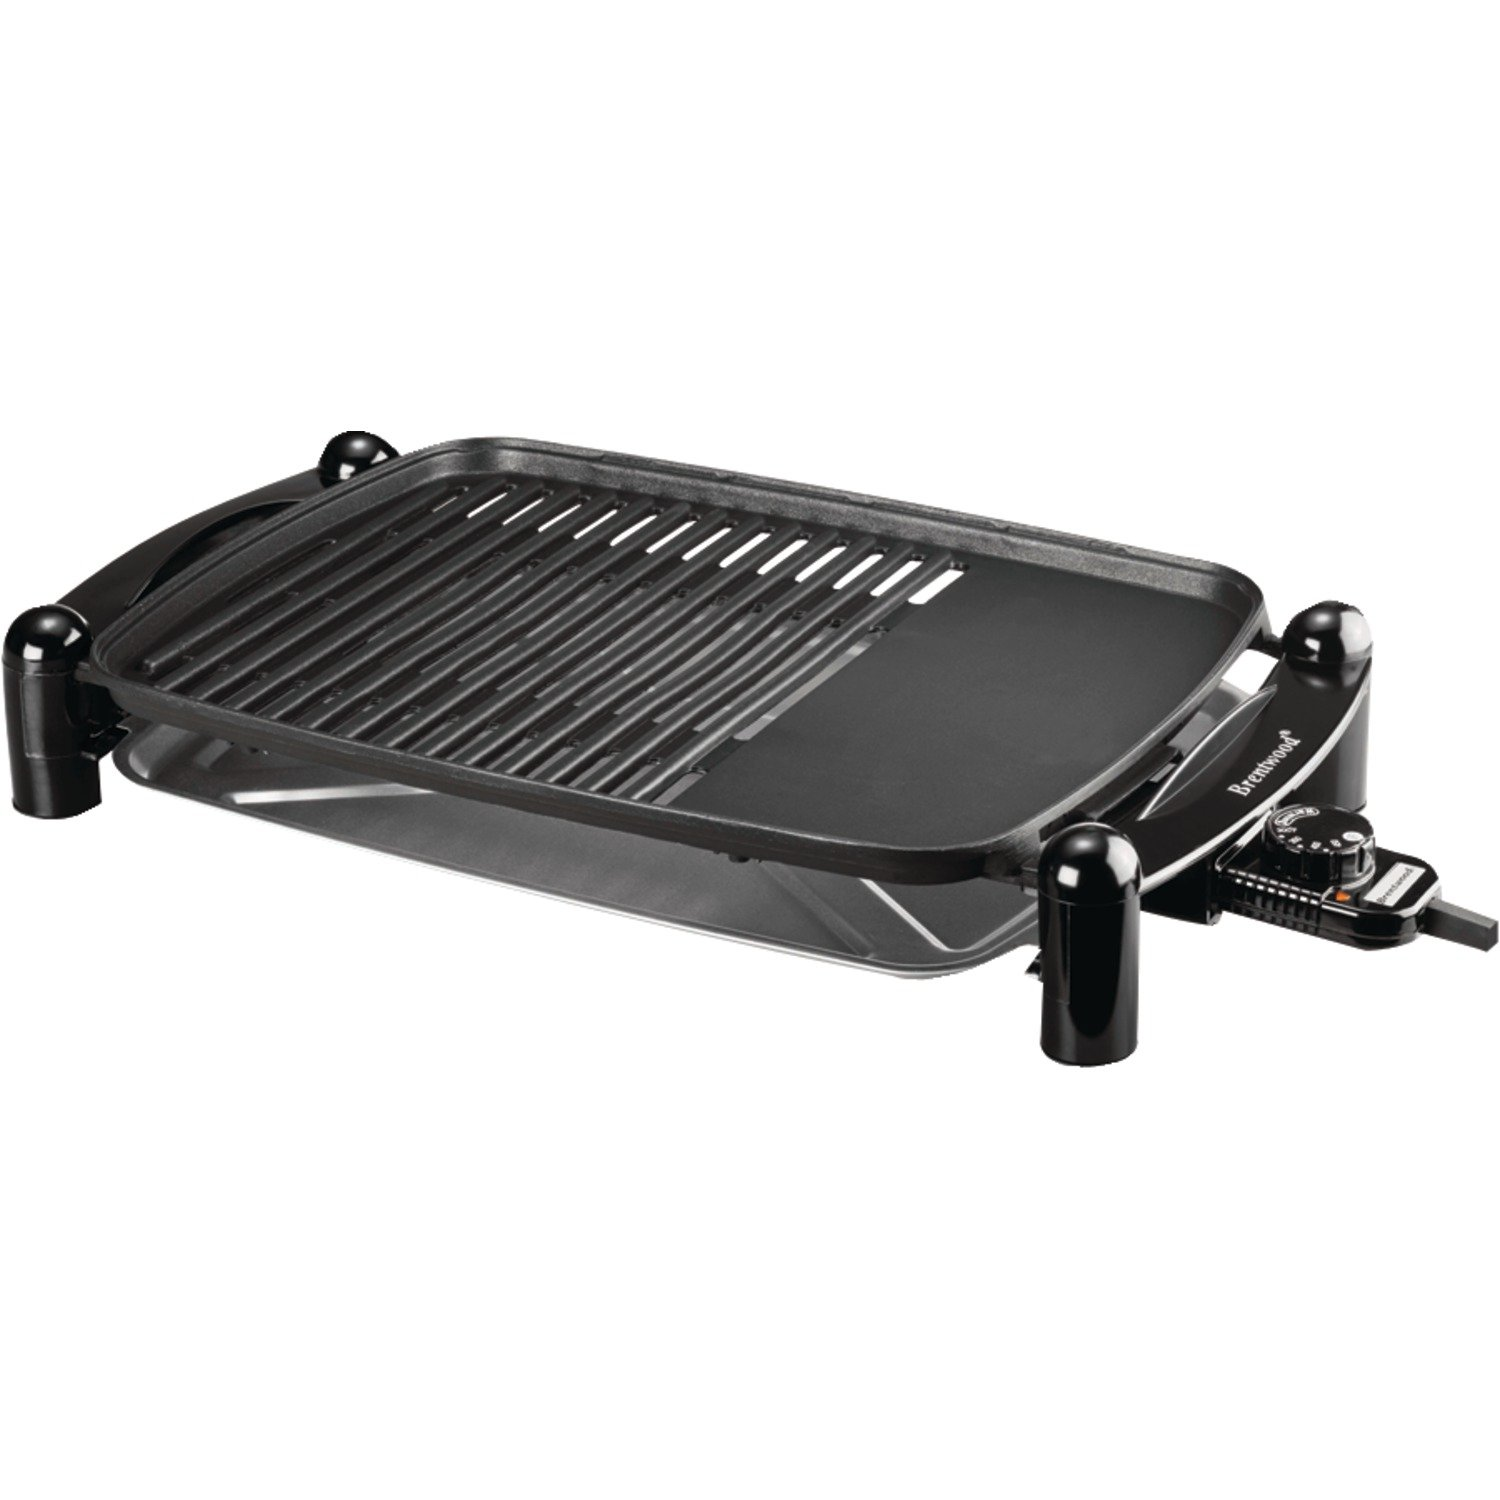 Brentwood TS-640 Indoor Electric BBQ Grill by Brentwood   B005NE1D5E